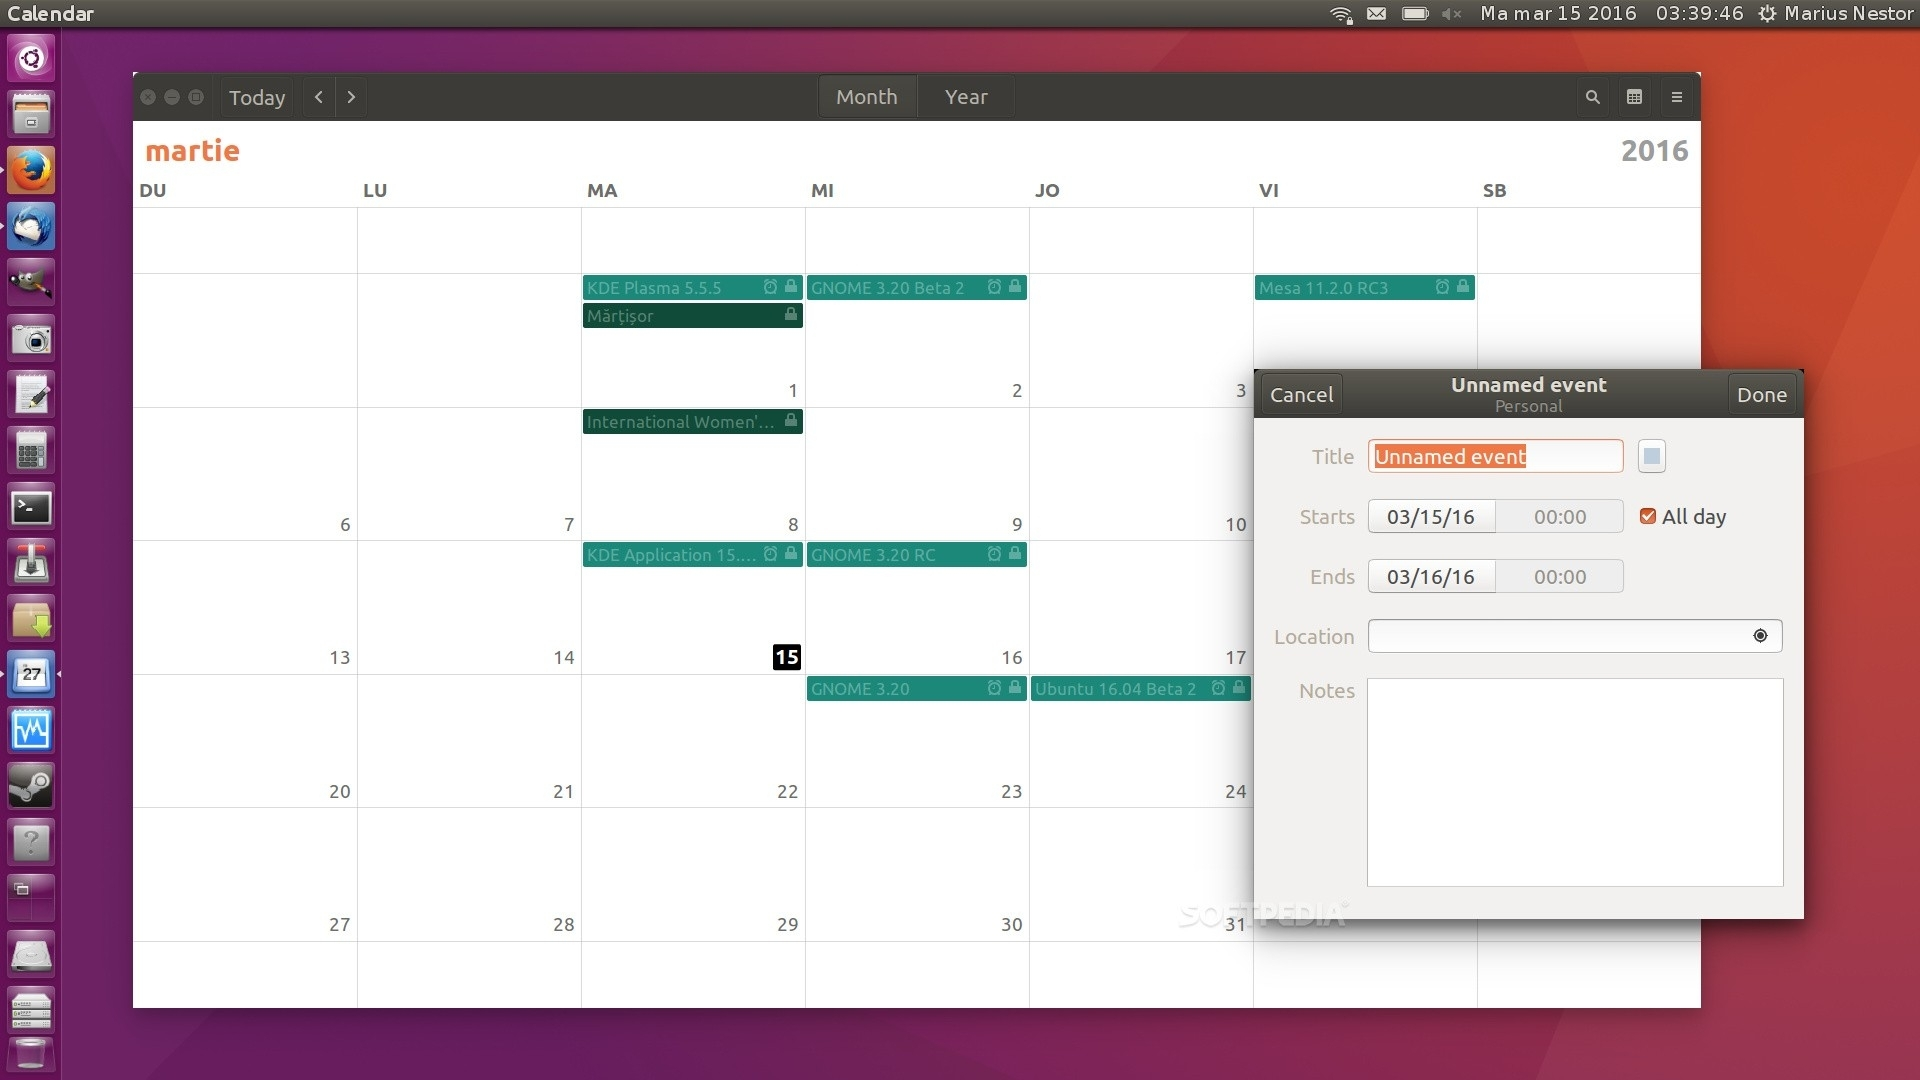 Gnome Calendar App Now Fades Out Past Events, Respects 12/24